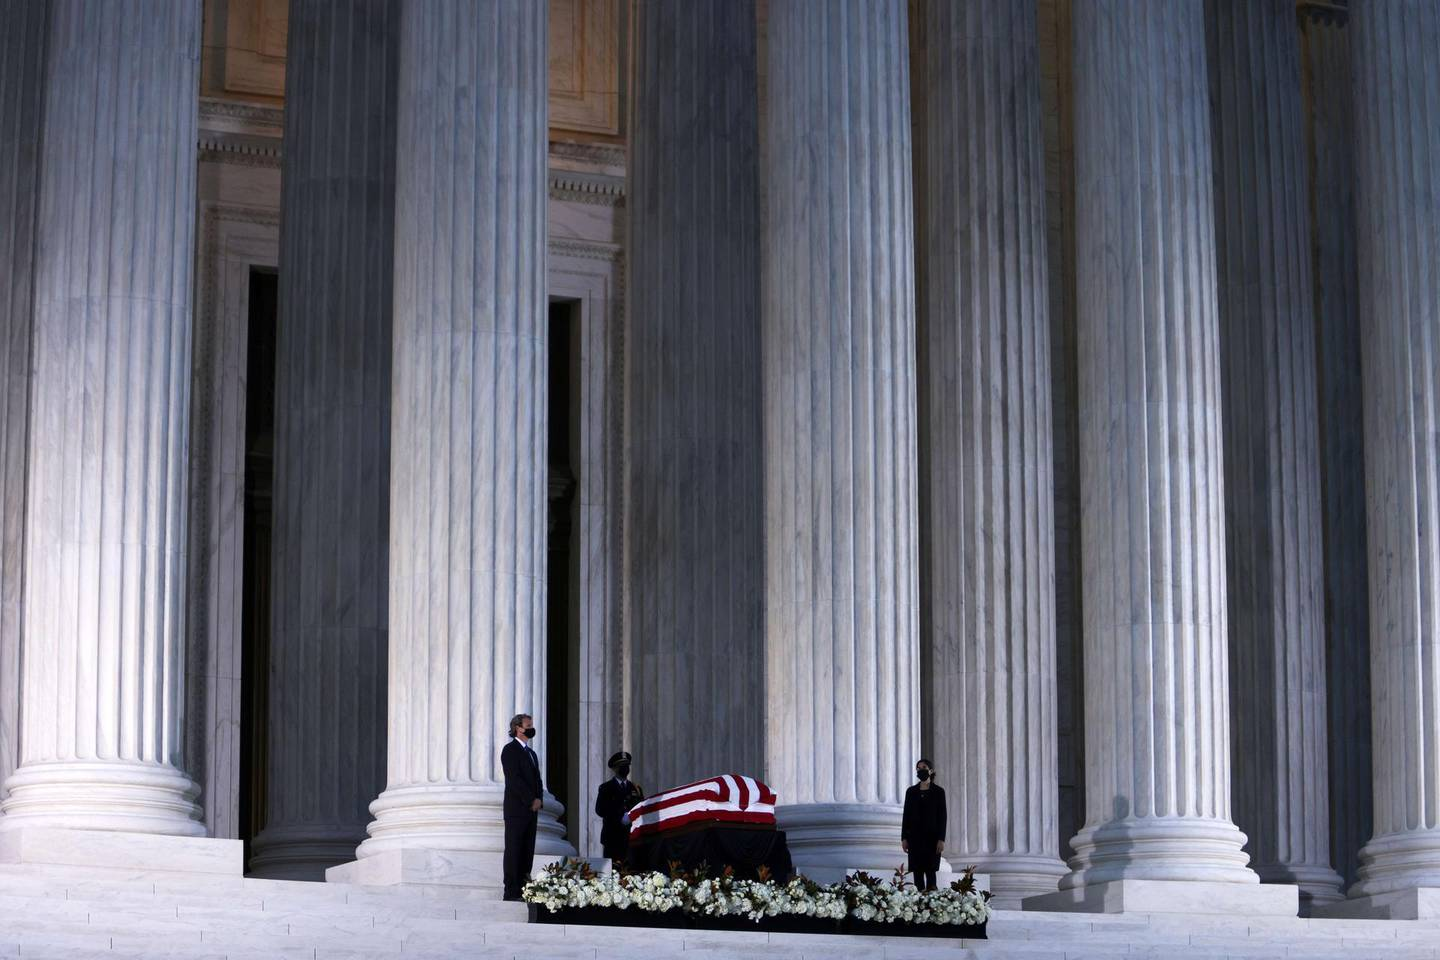 WASHINGTON, DC - SEPTEMBER 23: Members of the public pay respects to Associate Justice Ruth Bader Ginsburg as her flag-draped casket rests on the Lincoln catafalque on the west front of the U.S. Supreme Court September 23, 2020 in Washington, DC. A pioneering lawyer and according the Chief Justice John Roberts 'a jurist of historic stature,' Ginsburg died September 18 at the age of 87 after a long battle against cancer.   Alex Wong/Getty Images/AFP == FOR NEWSPAPERS, INTERNET, TELCOS & TELEVISION USE ONLY ==